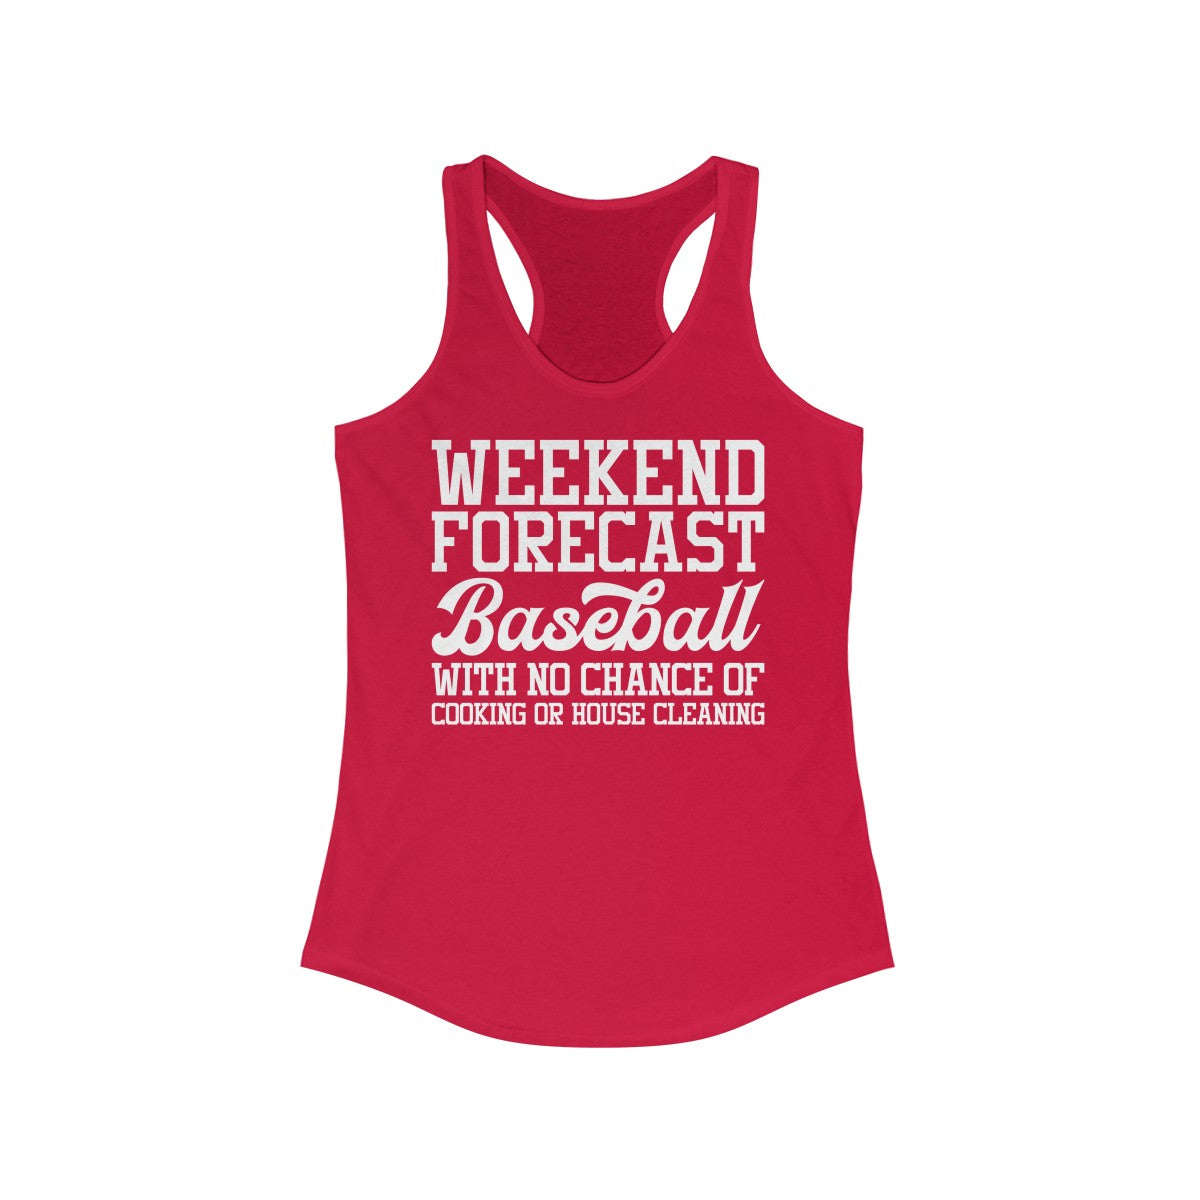 Baseball Weekend Forecast Women's Ideal Racerback Tank